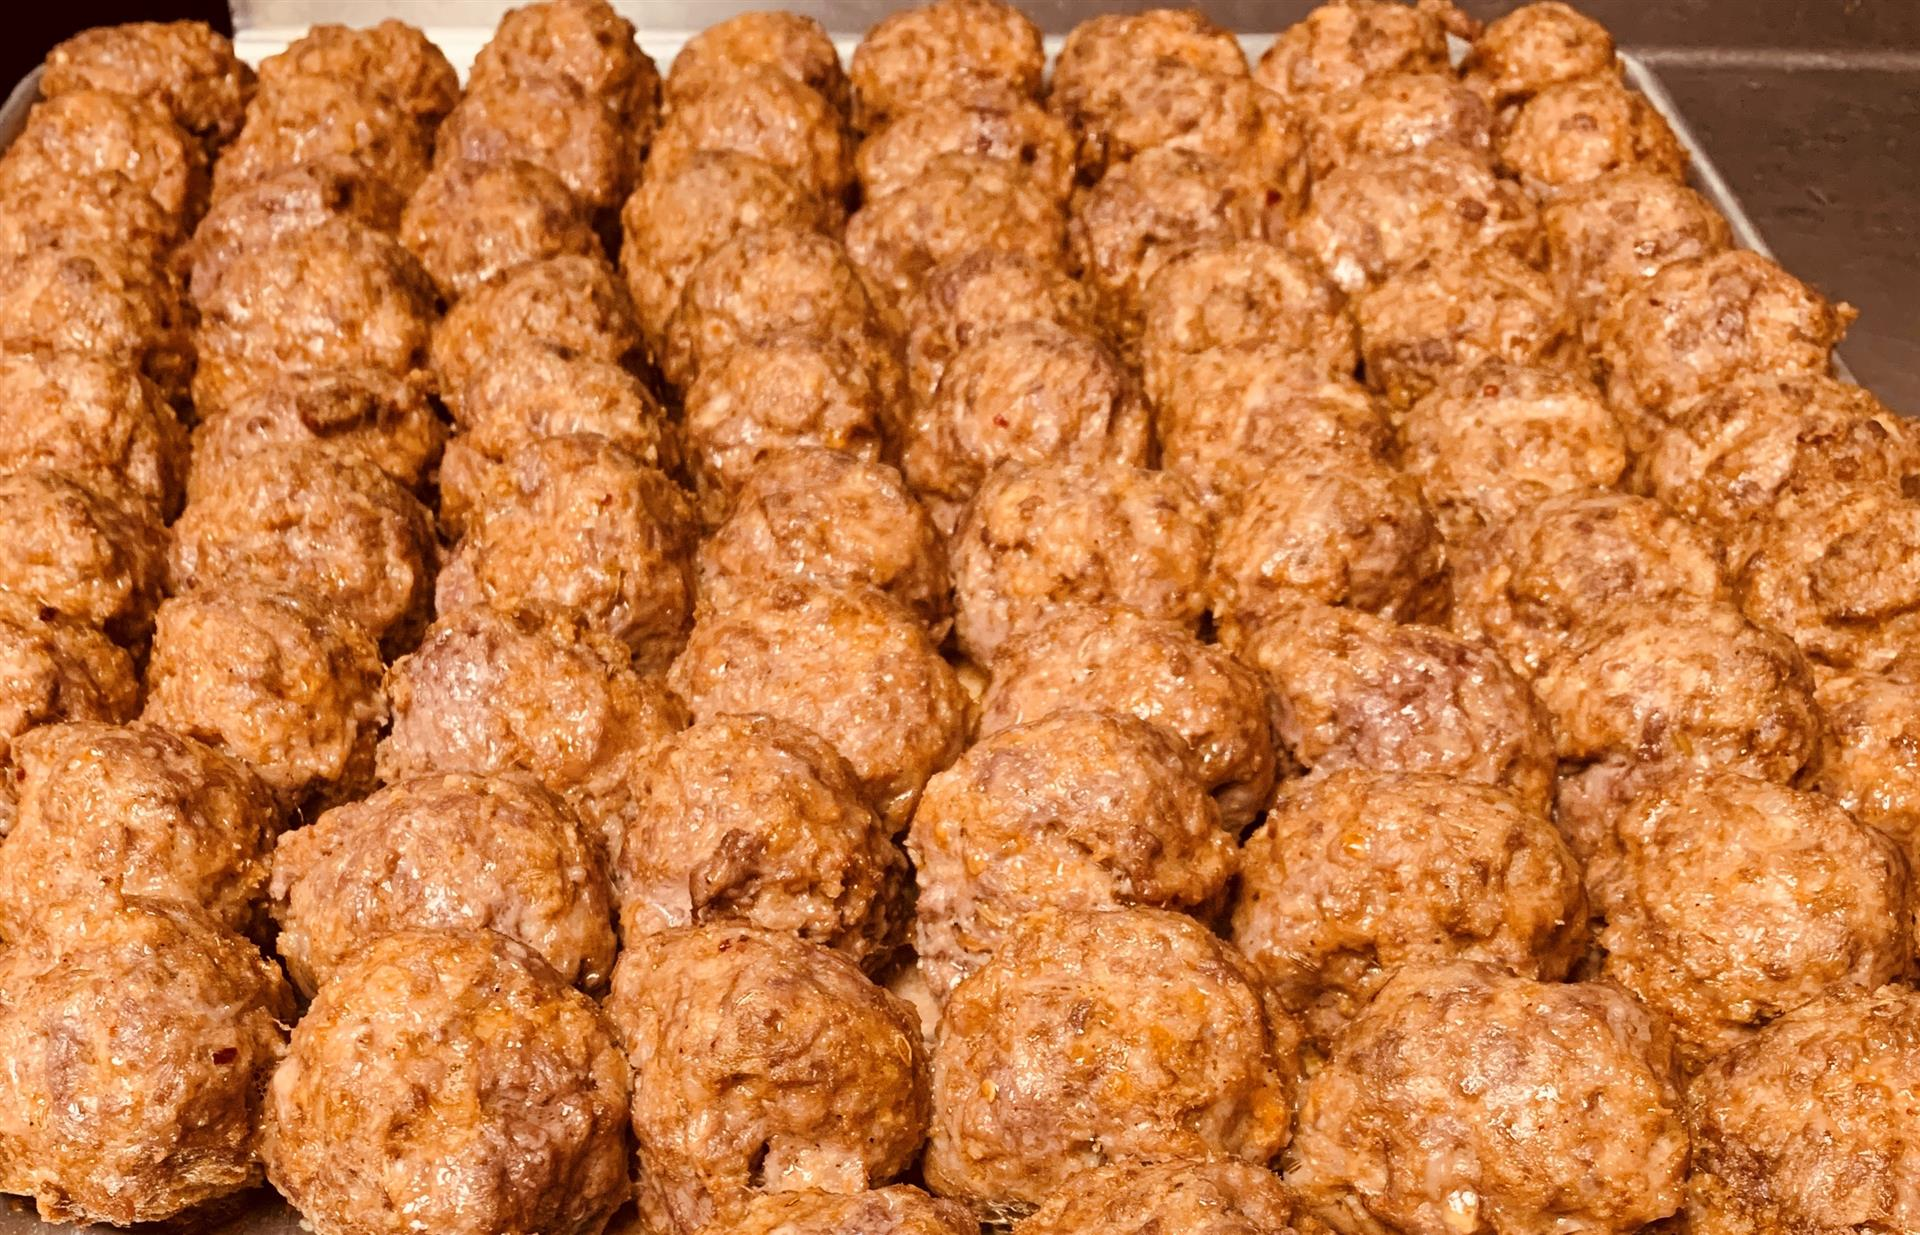 Assortment of Meatballs on a tray